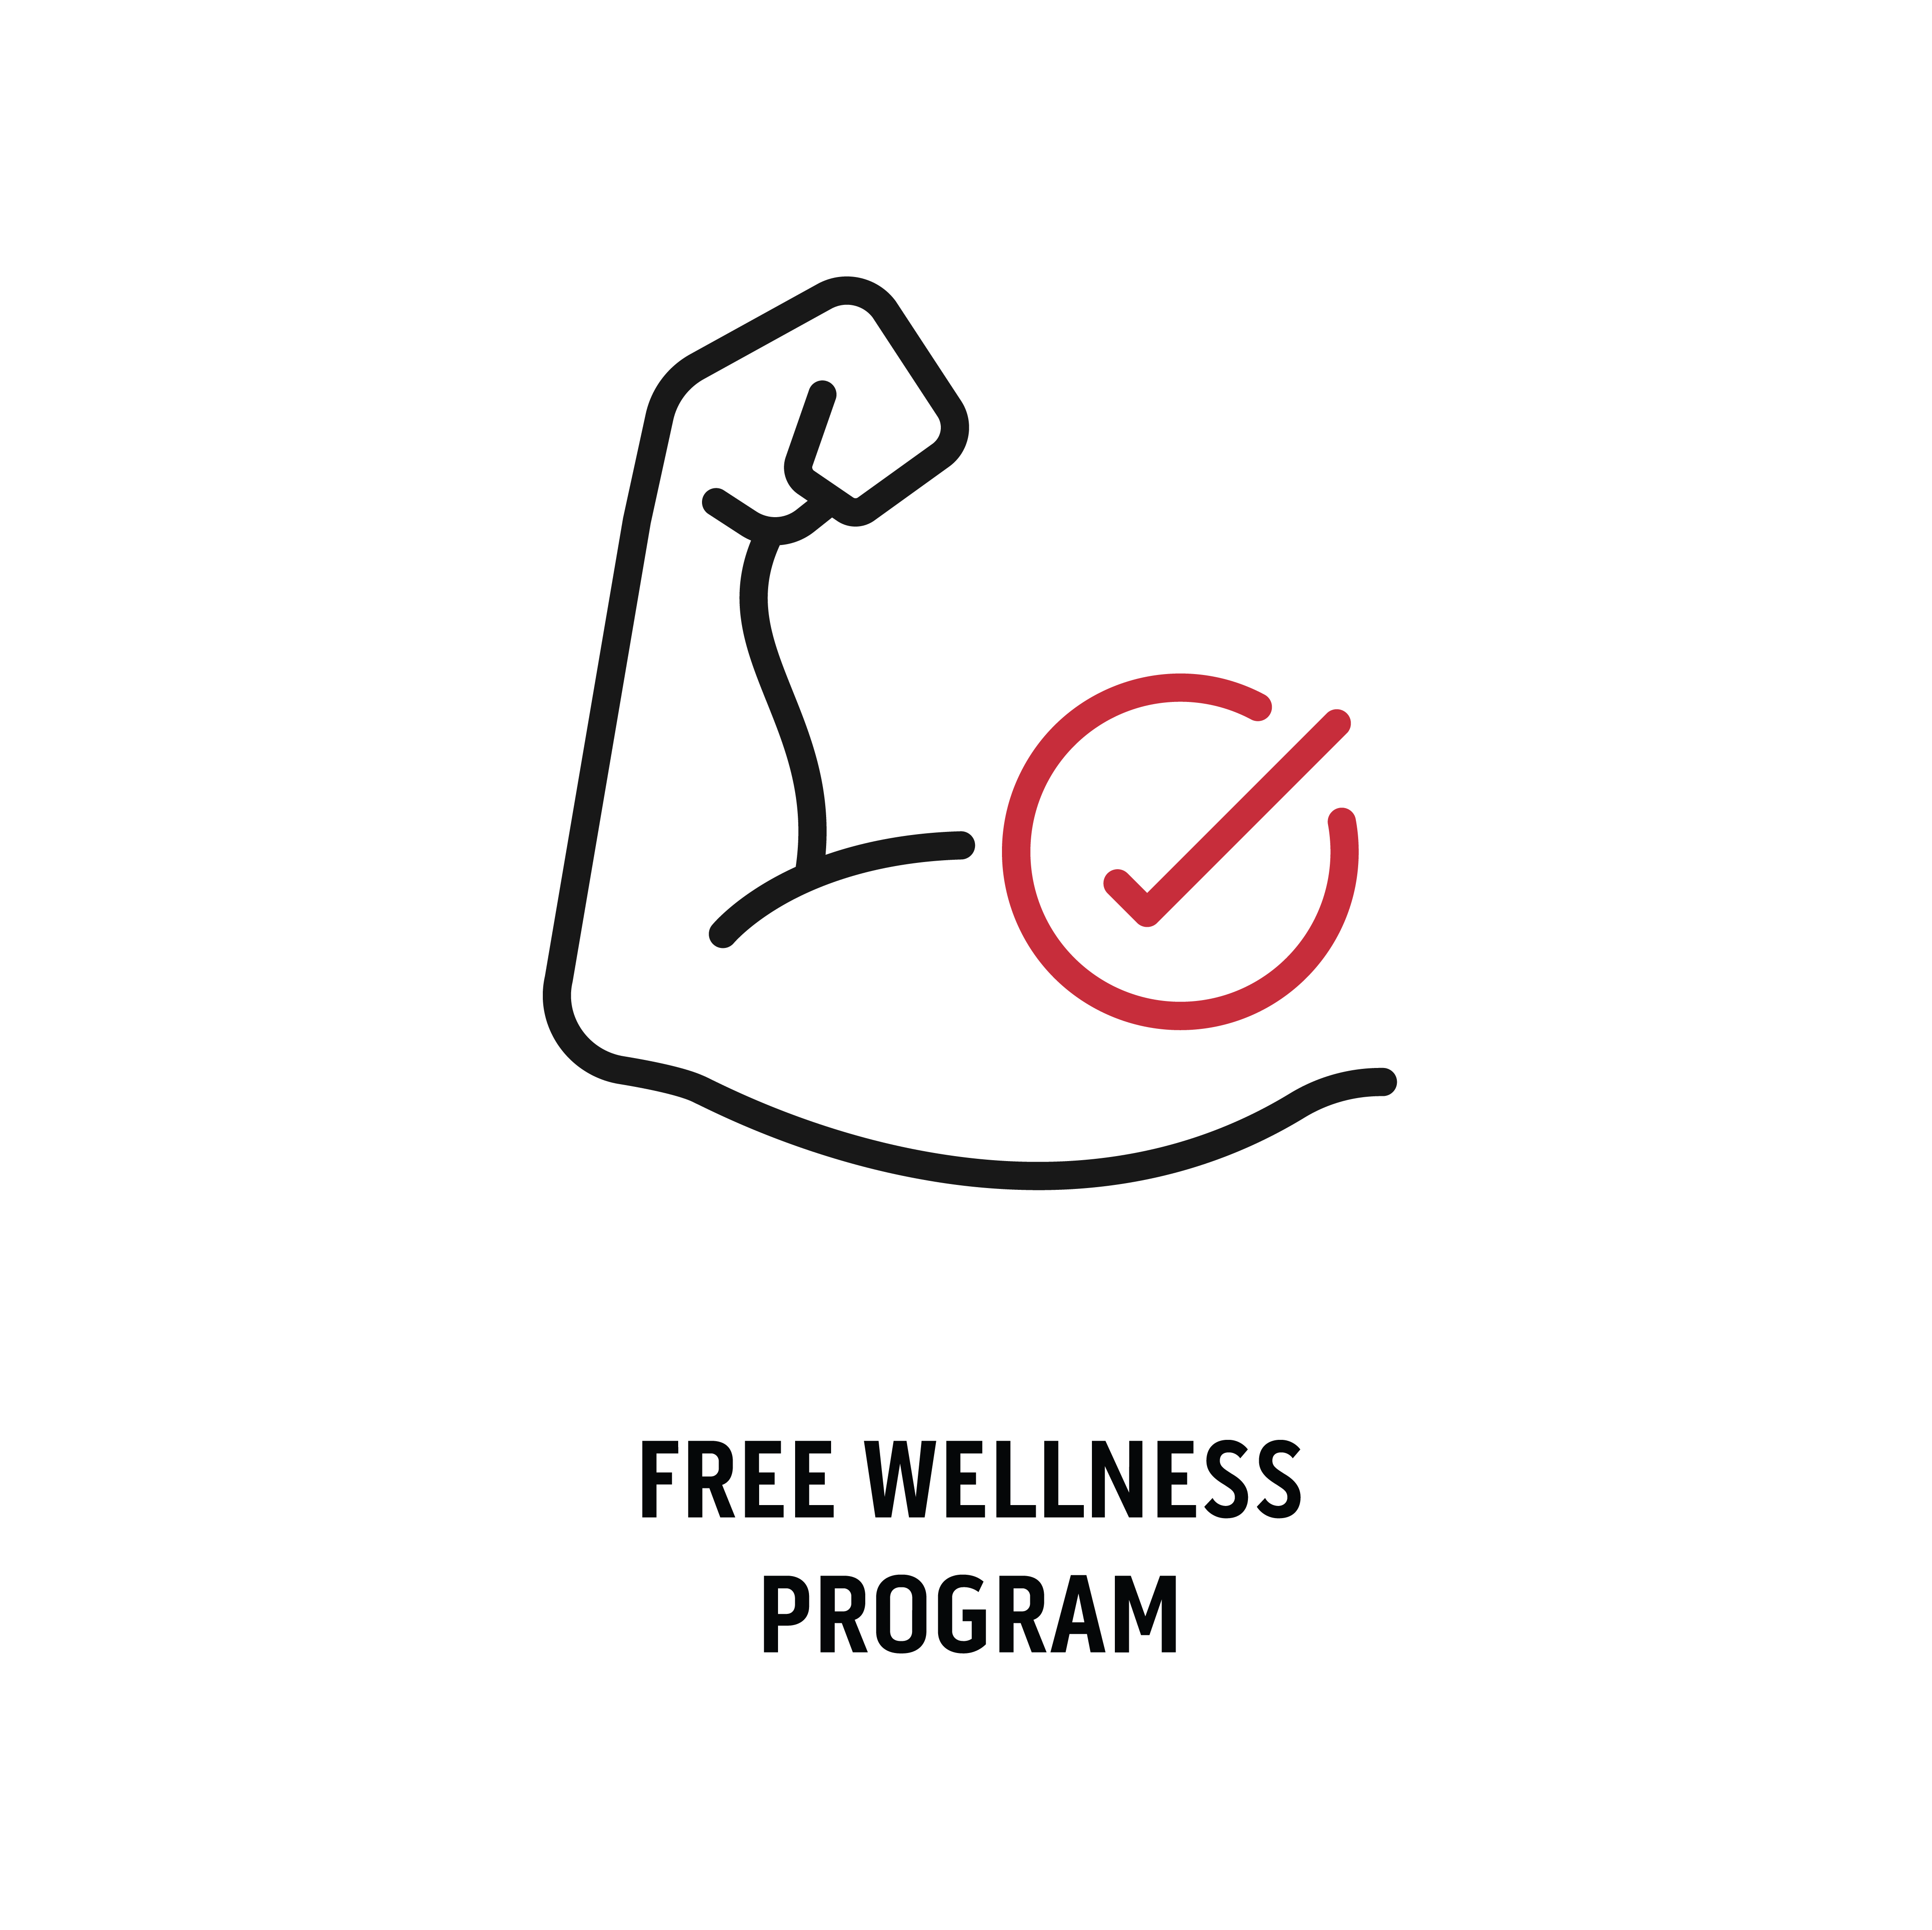 Free Onsite Wellness Coach For all medical plan participants